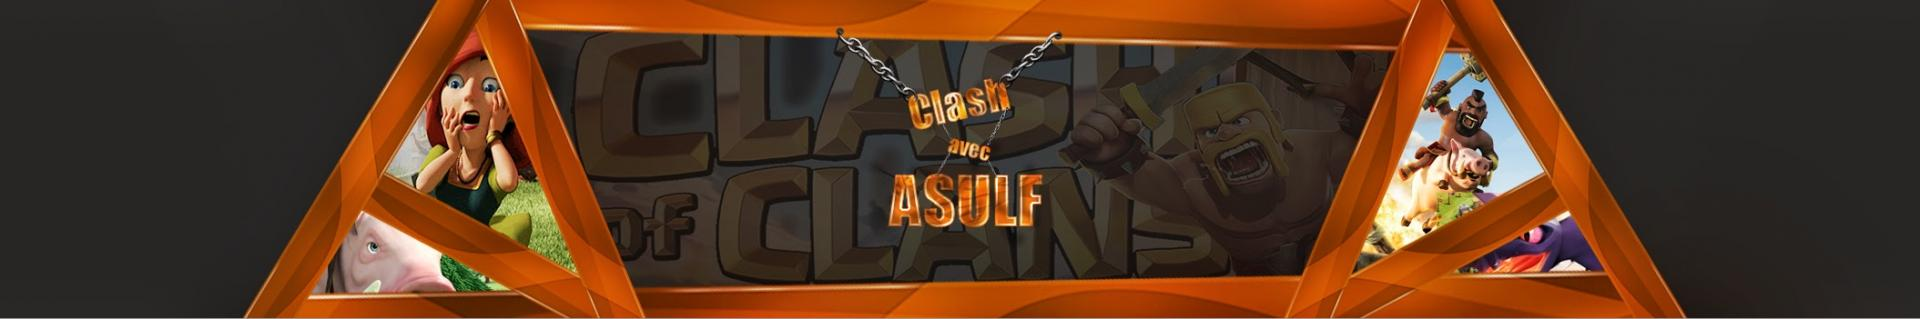 Clash of Clans | Asulf - YouTube